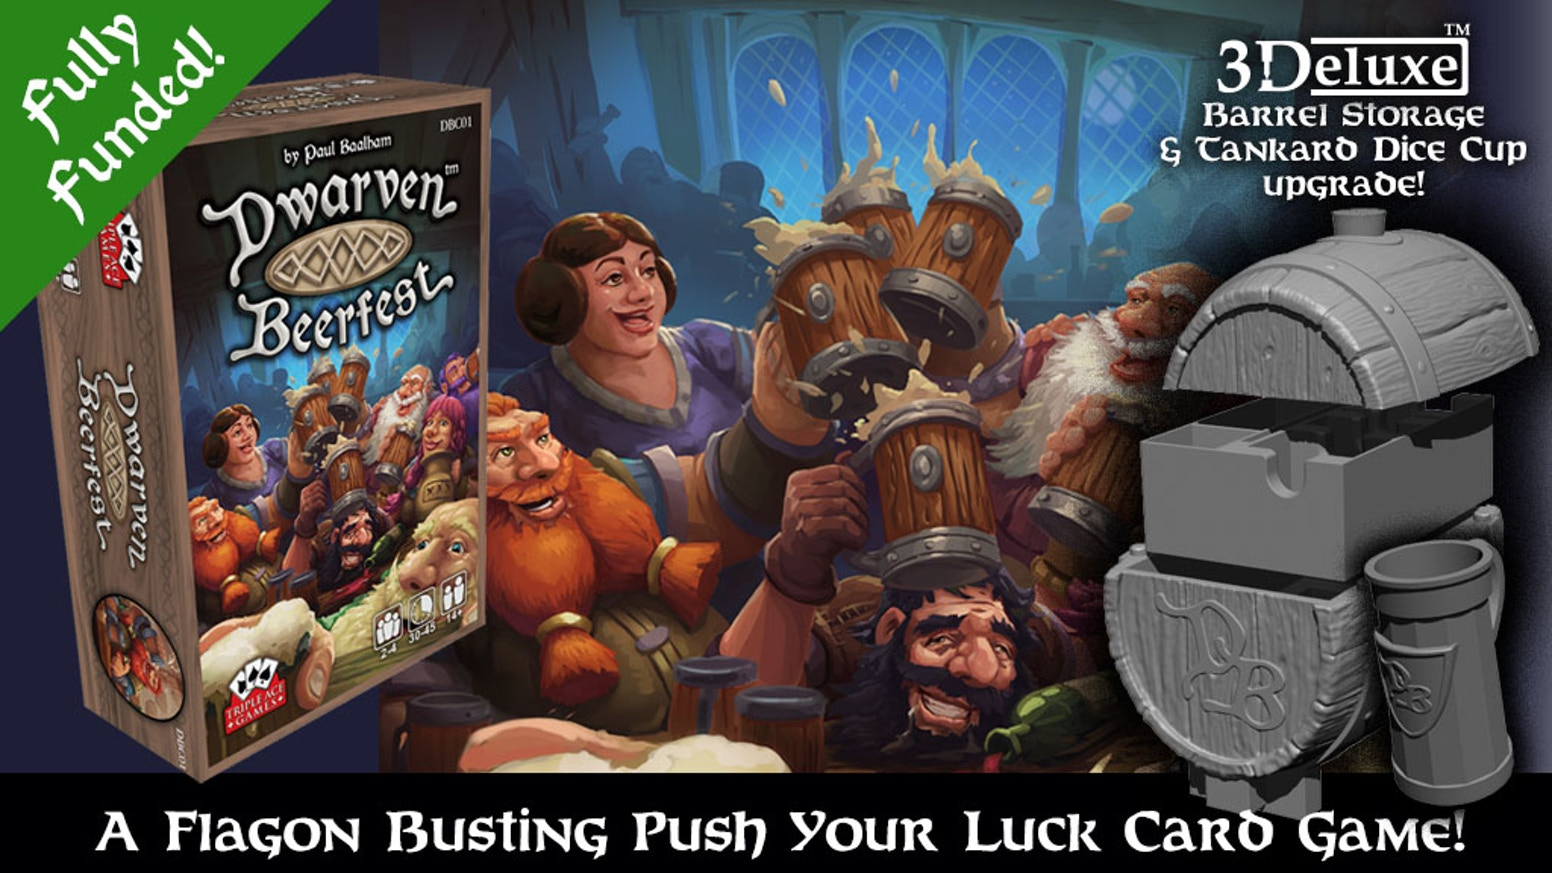 Grasp your flagon and take a drink! Dwarven Beerfest is a push your luck dice and card game!